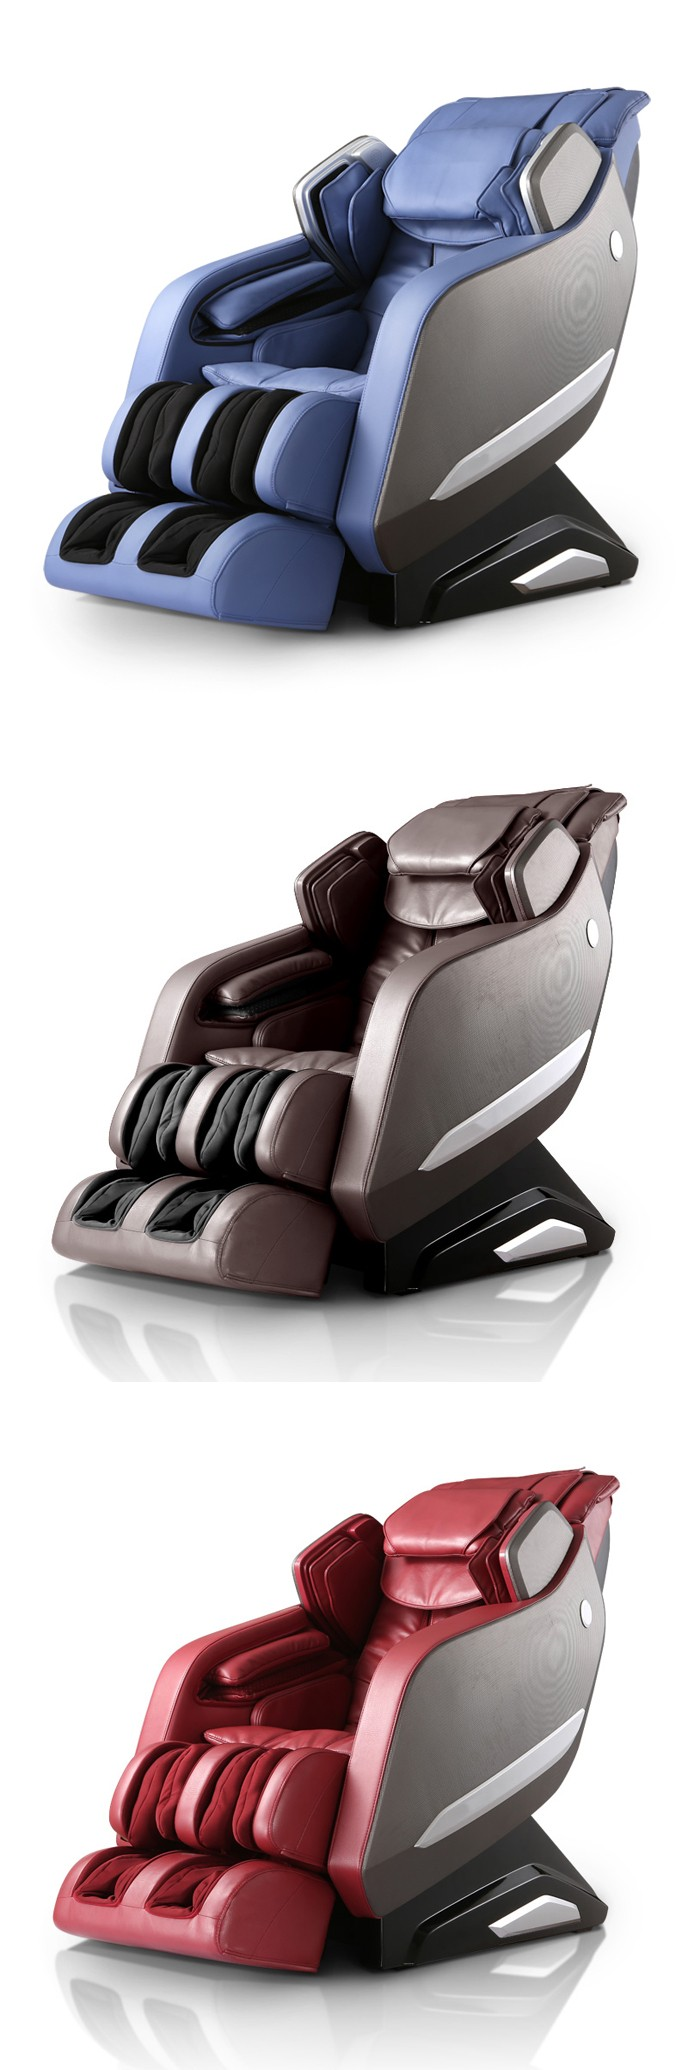 beauty health massage chair RT6910S hypnotherapy 3d massage chairs